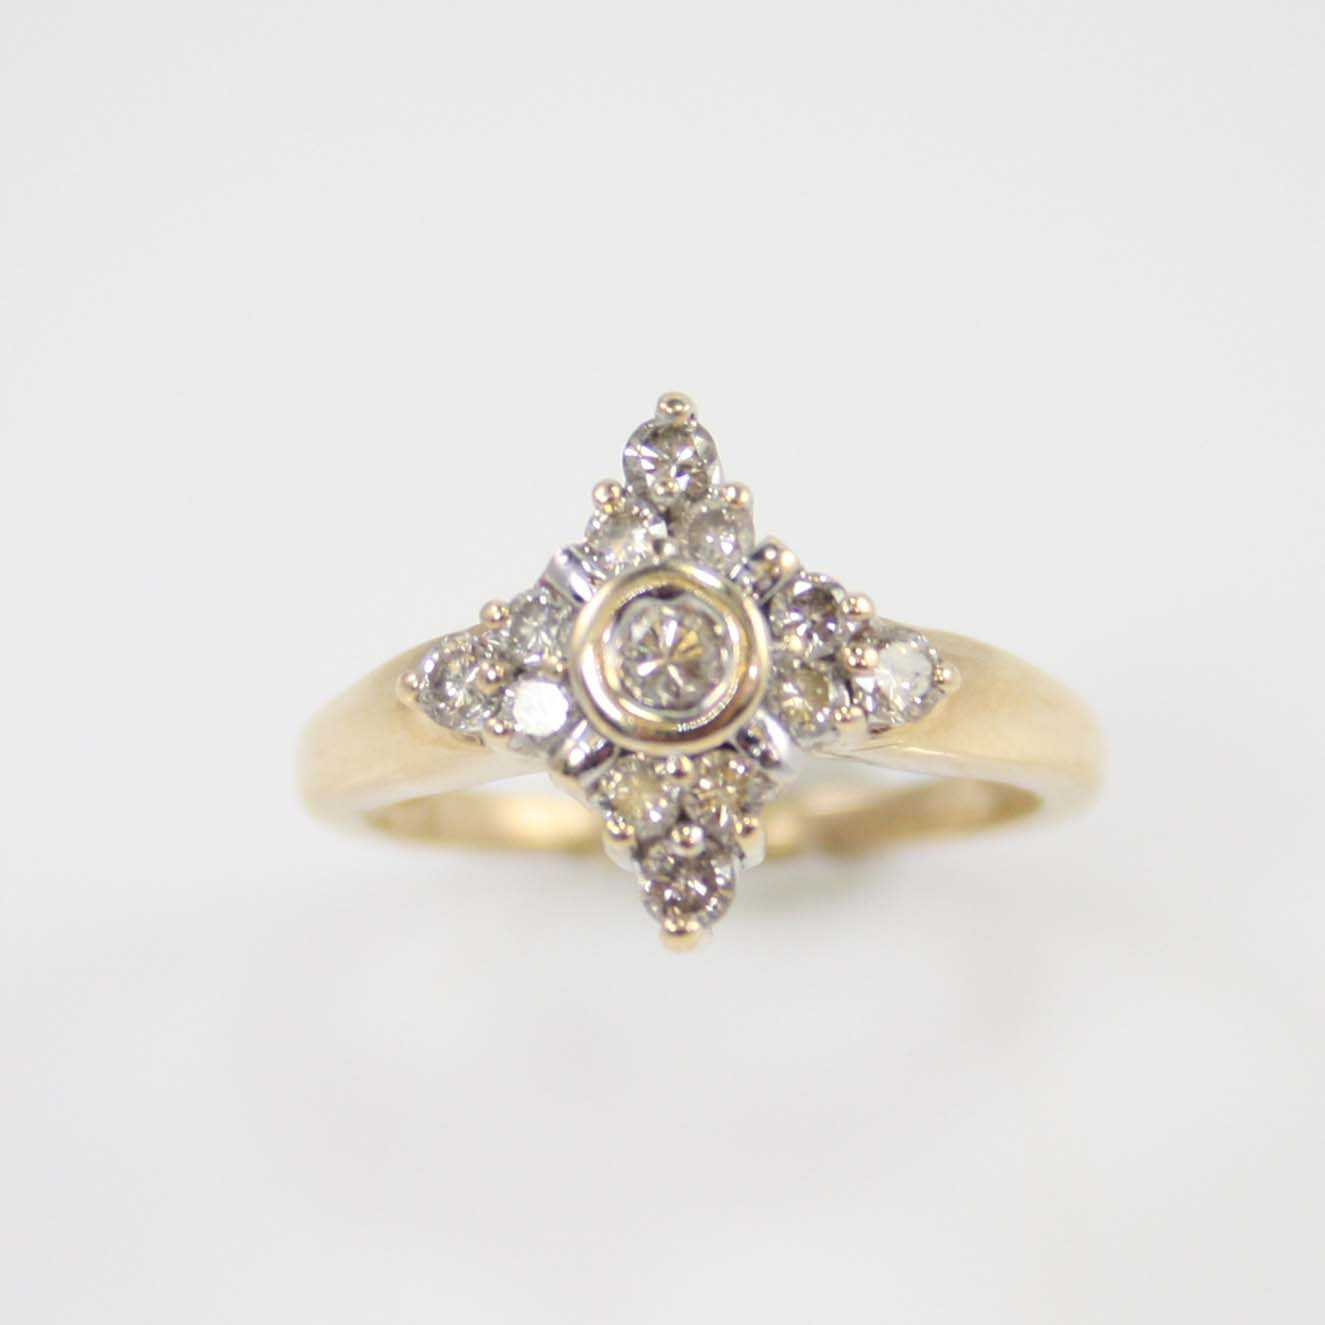 Cute Fashion Ring For Bride Photo Fashionguru99